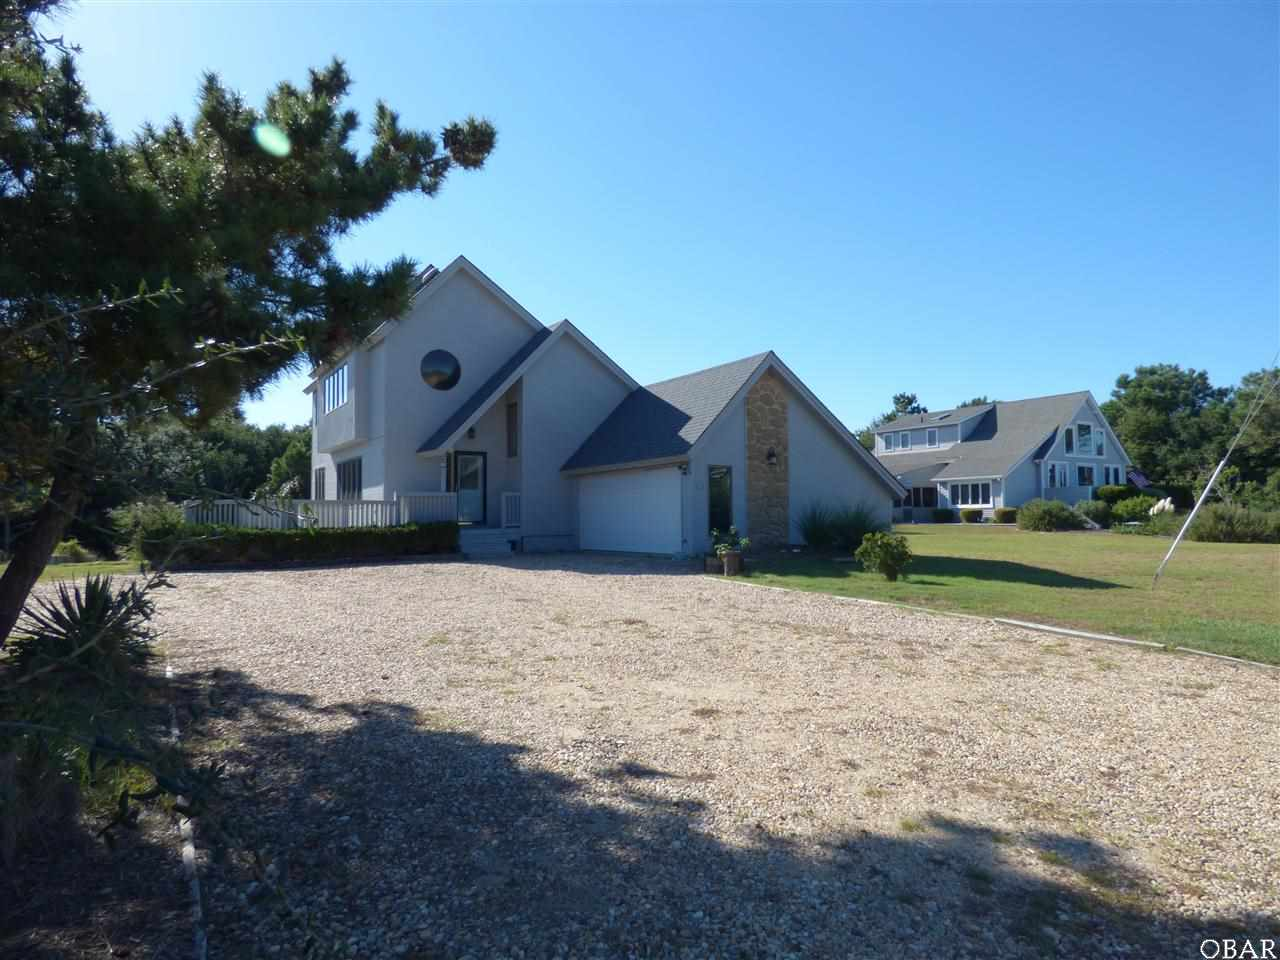 47 Skyline Road,Southern Shores,NC 27949,4 Bedrooms Bedrooms,3 BathroomsBathrooms,Residential,Skyline Road,84638